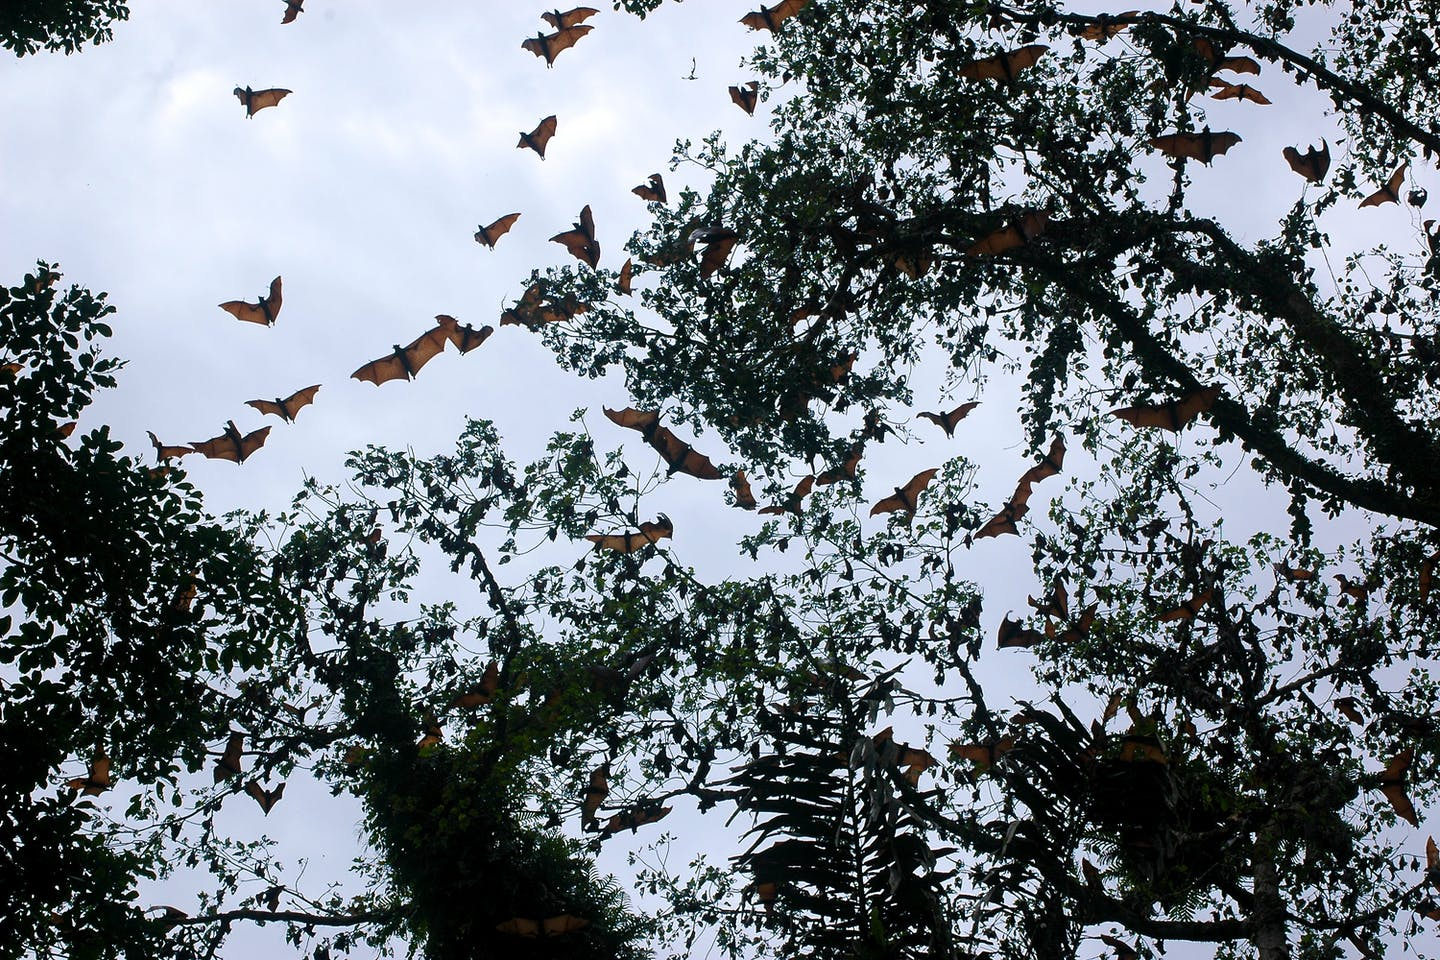 Scientists sceptical of new bat study linking climate change to Covid-19 emergence